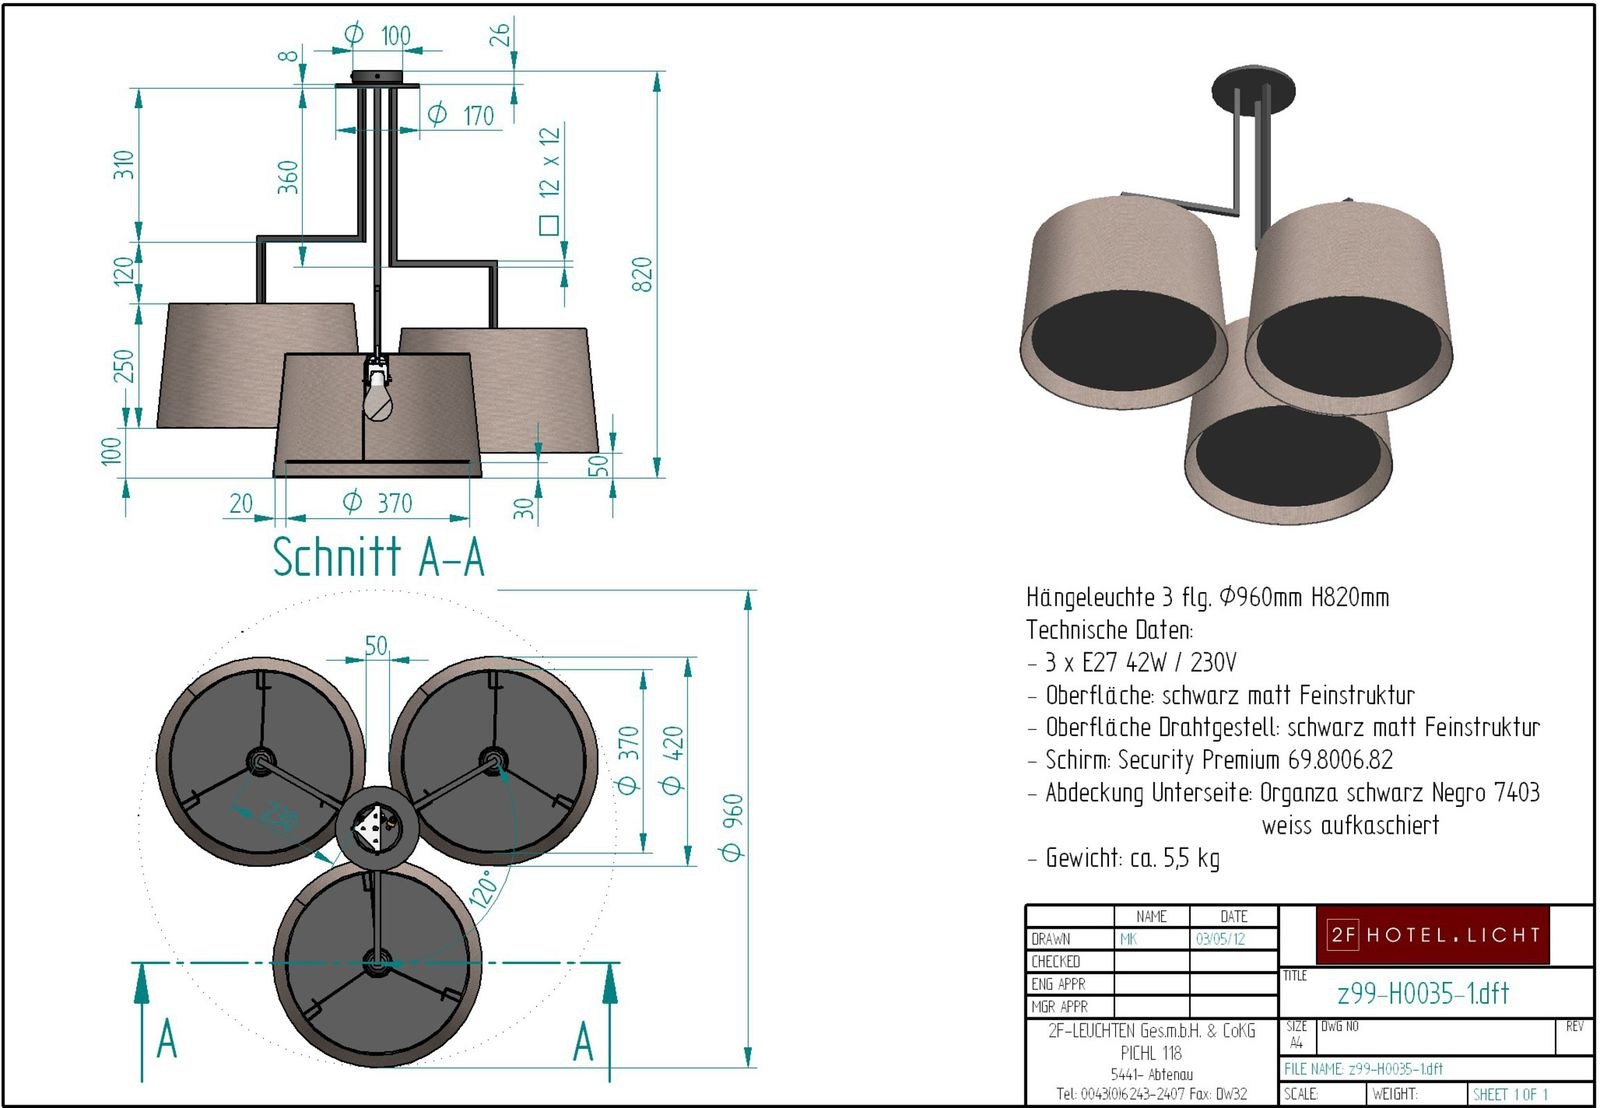 pendant lamp, wide 1x500mm, 1x420mm, 1x350mm, shade 400x250mm, surface: bronzed brass, techn. details: 3xE27, 60W